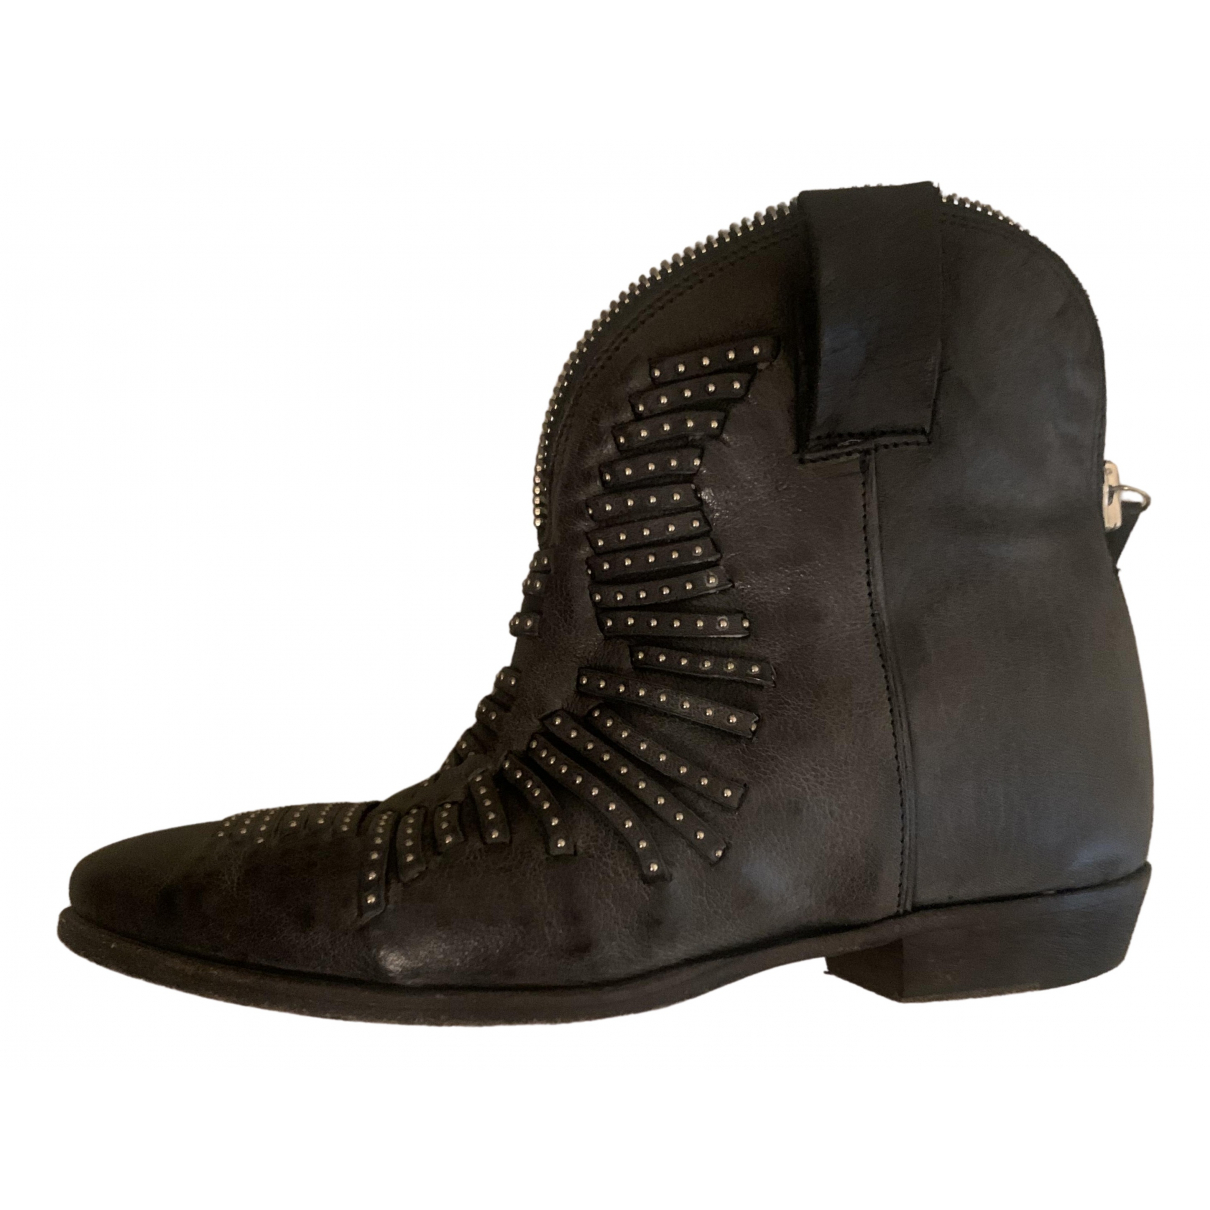 Cinzia Araia \N Anthracite Leather Ankle boots for Women 38 EU